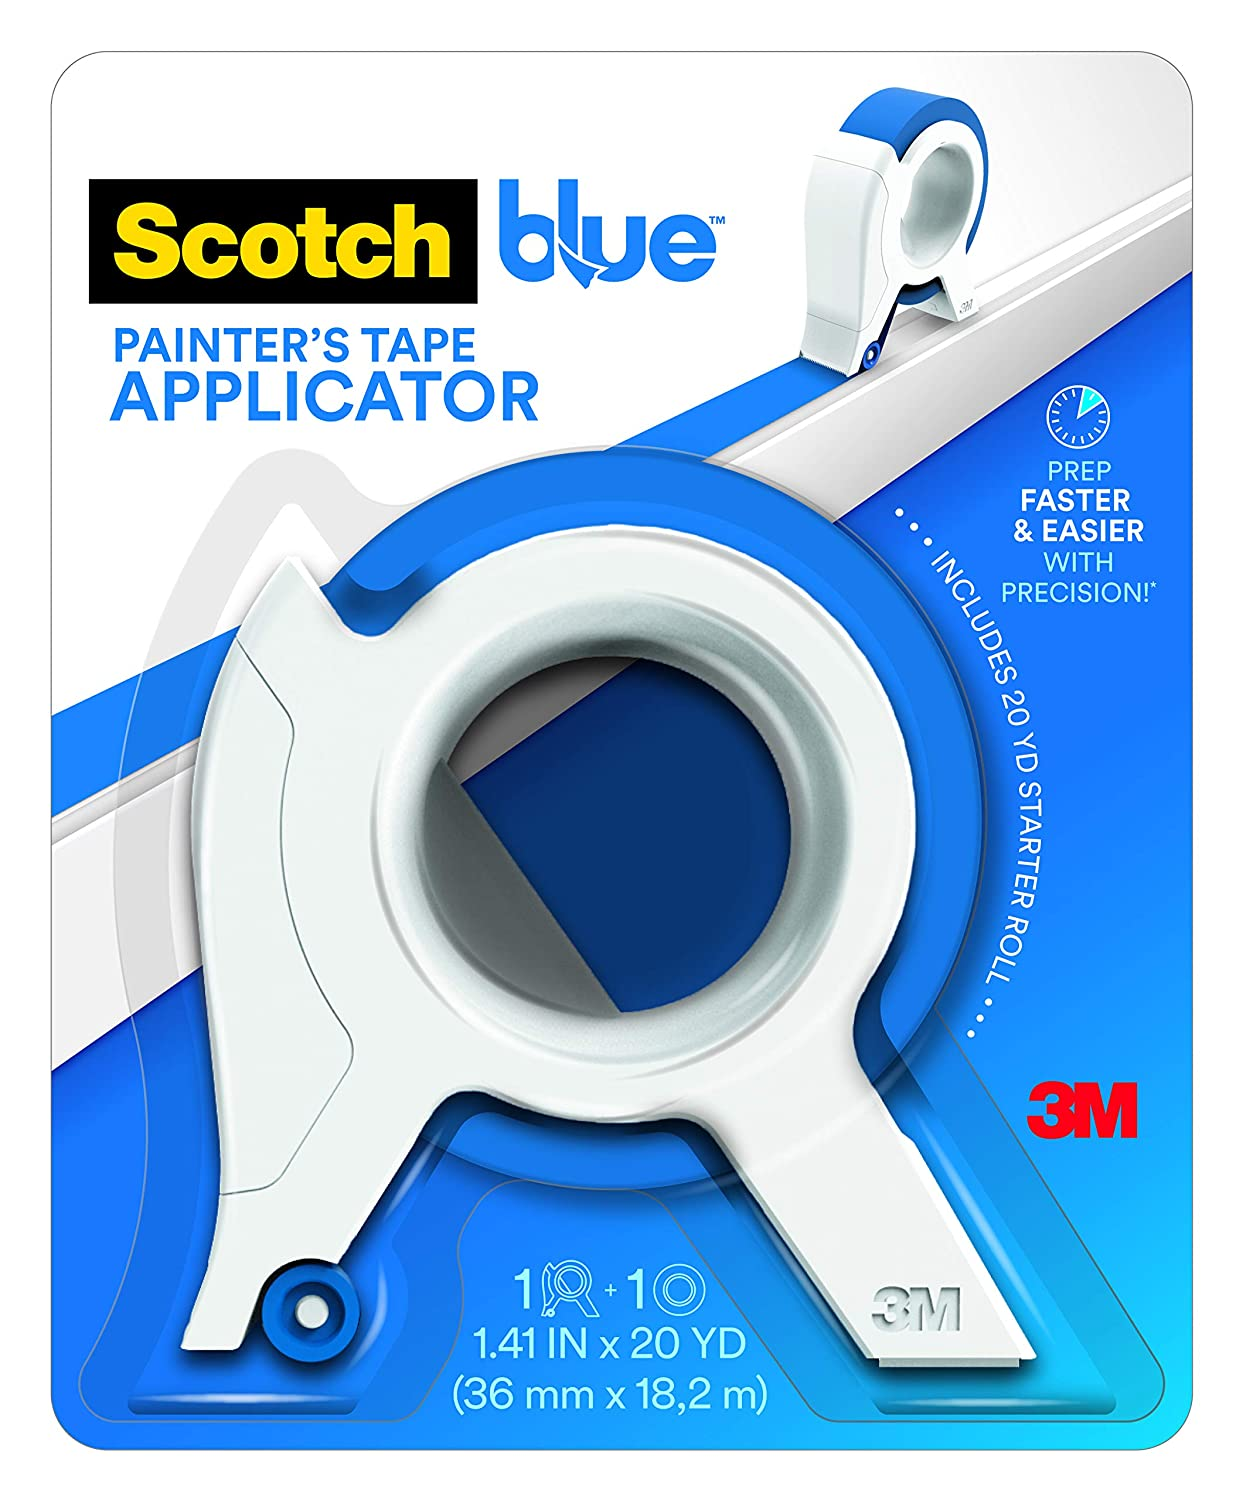 ScotchBlue TA3-SB Painter's Tape Applicator, Blue, with 1 Starter Roll 1.41 in. x 20 yd